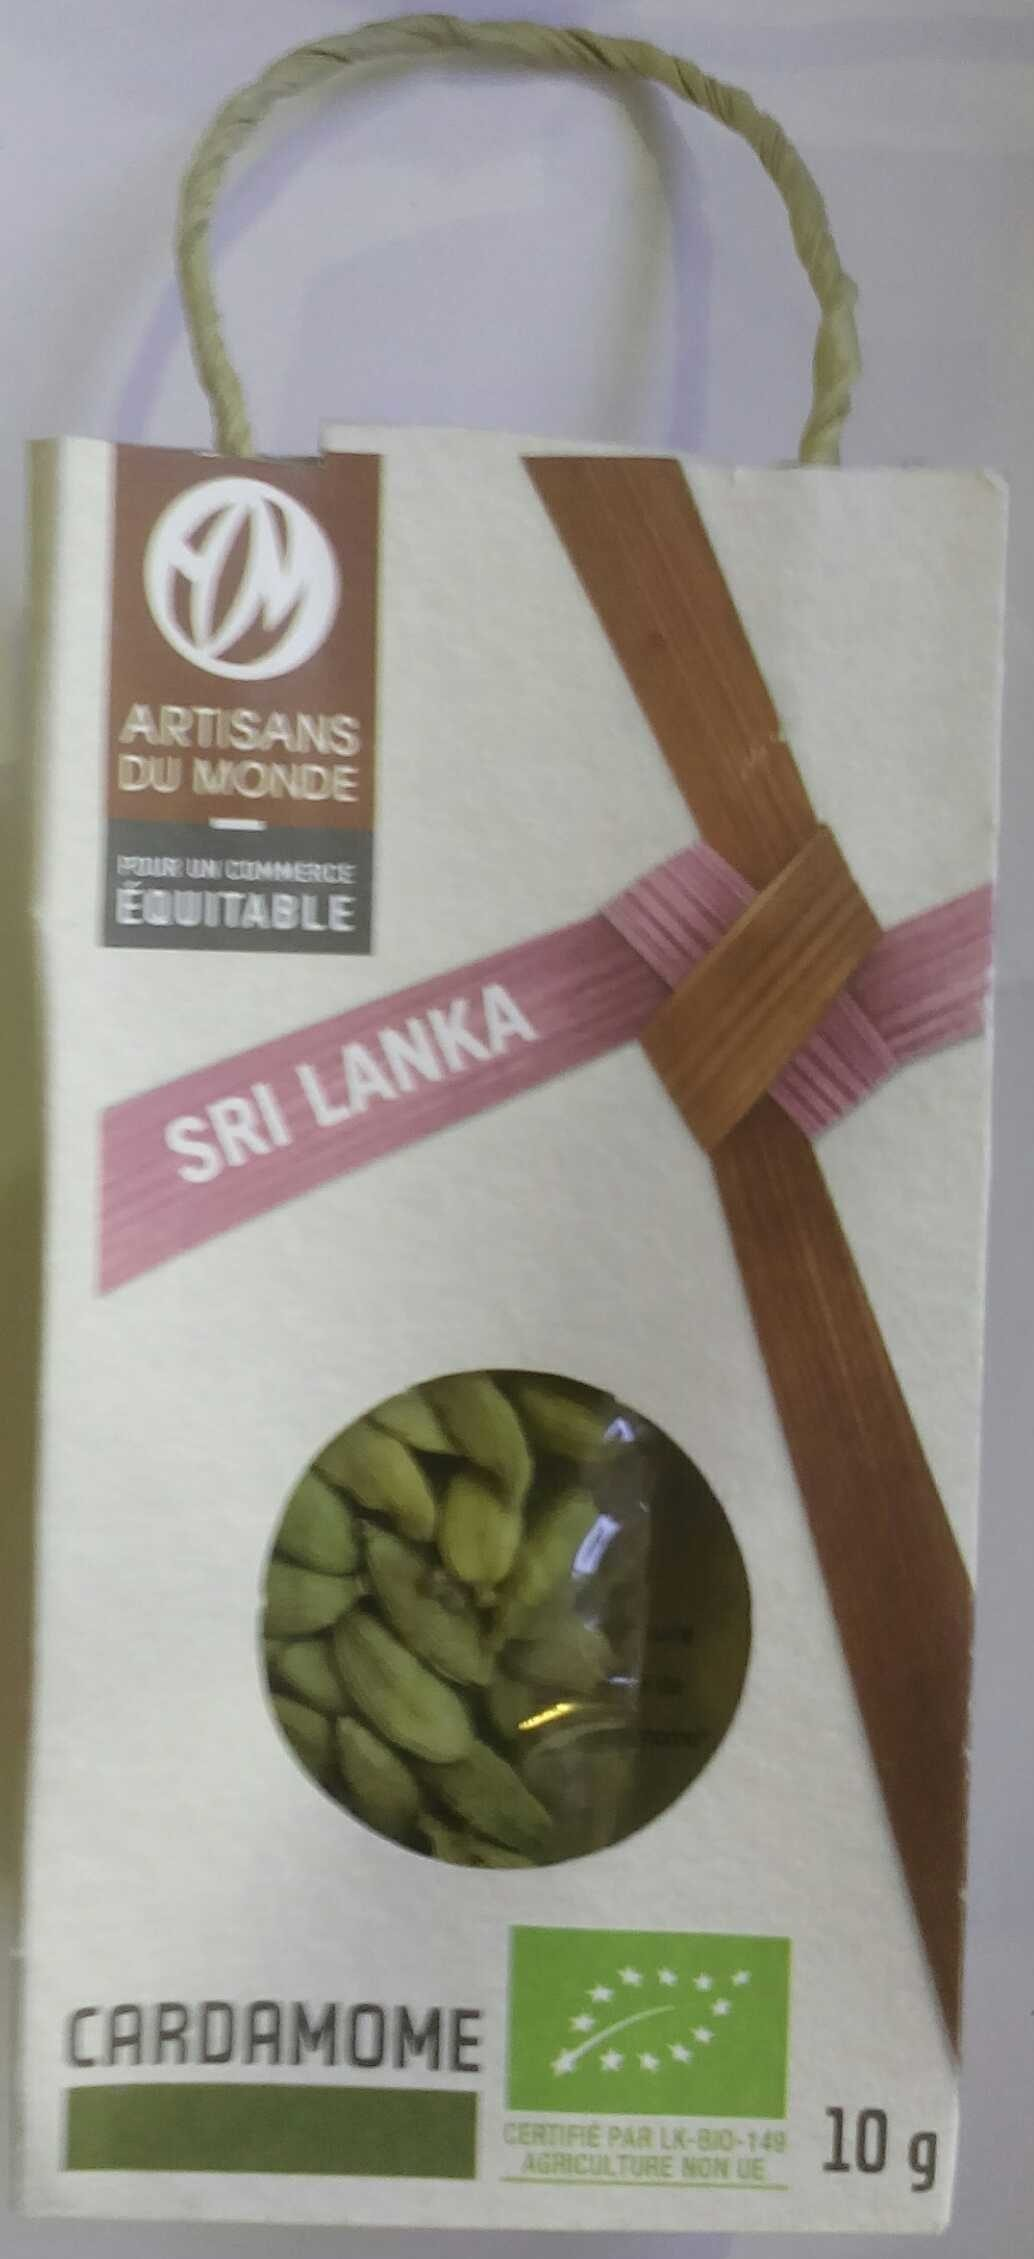 Cardamome - Product - fr